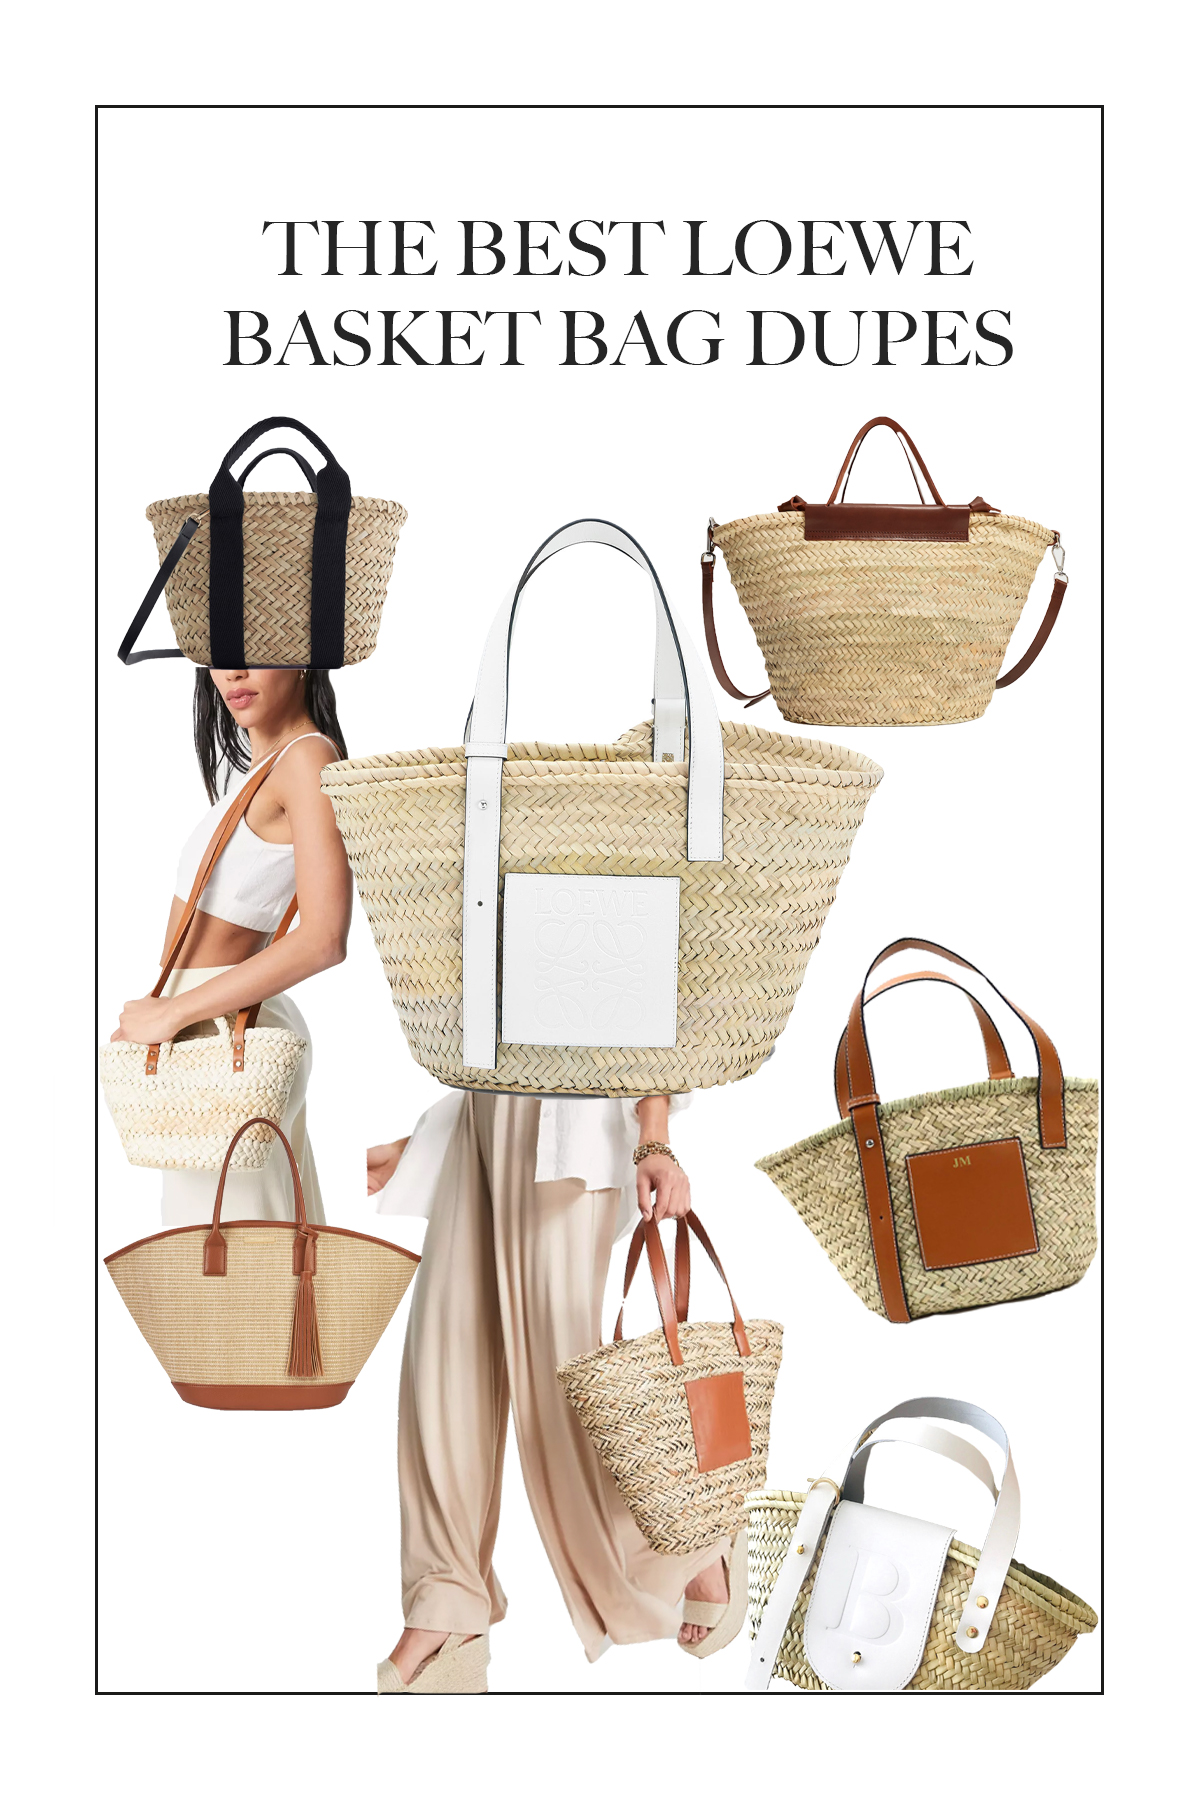 I have searched high and low and these are the best Loewe Basket Bag Dupes!